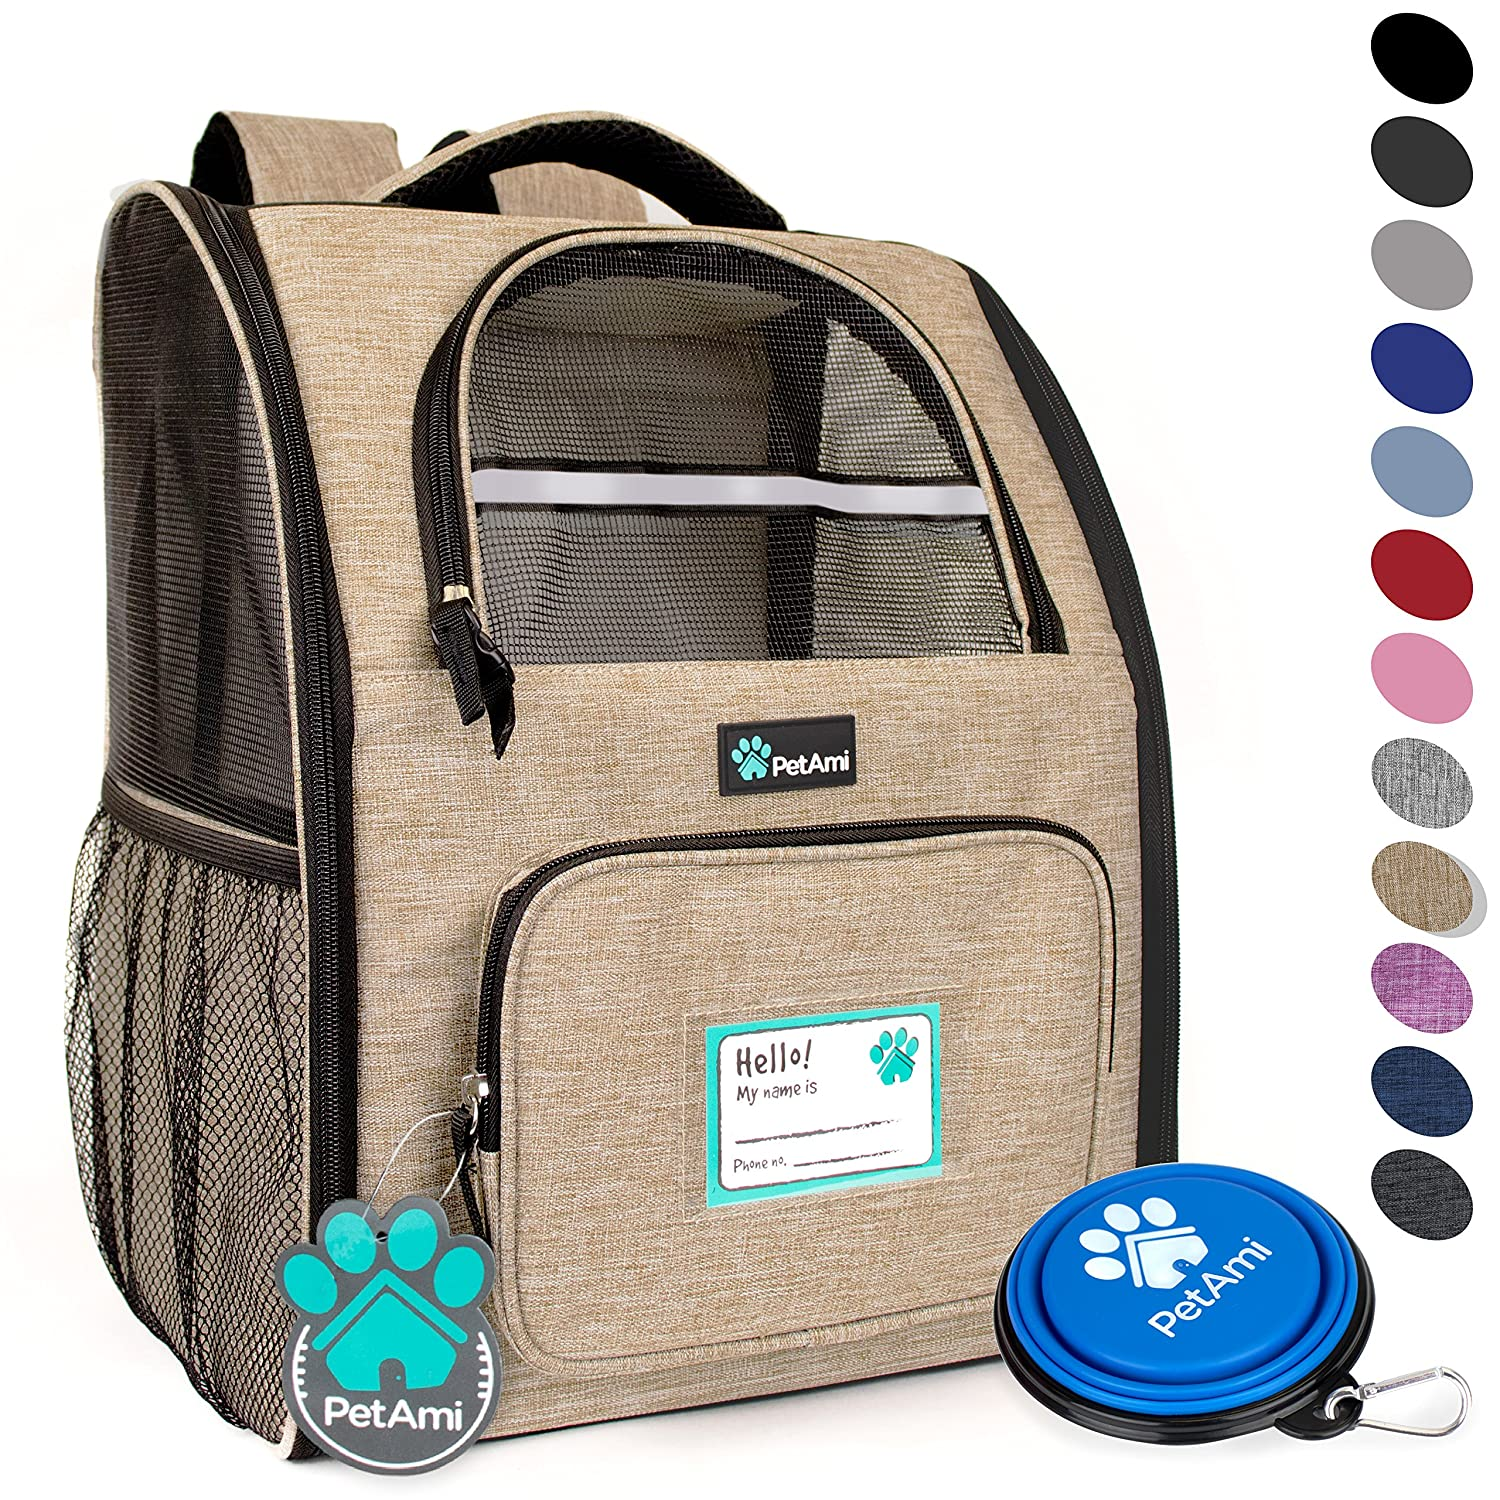 Heather Taupe PetAmi Deluxe Pet Carrier Backpack for Small Cats and Dogs, Puppies   Ventilated Design, Two-Sided Entry, Safety Features and Cushion Back Support   for Travel, Hiking, Outdoor Use (Heather Taupe)